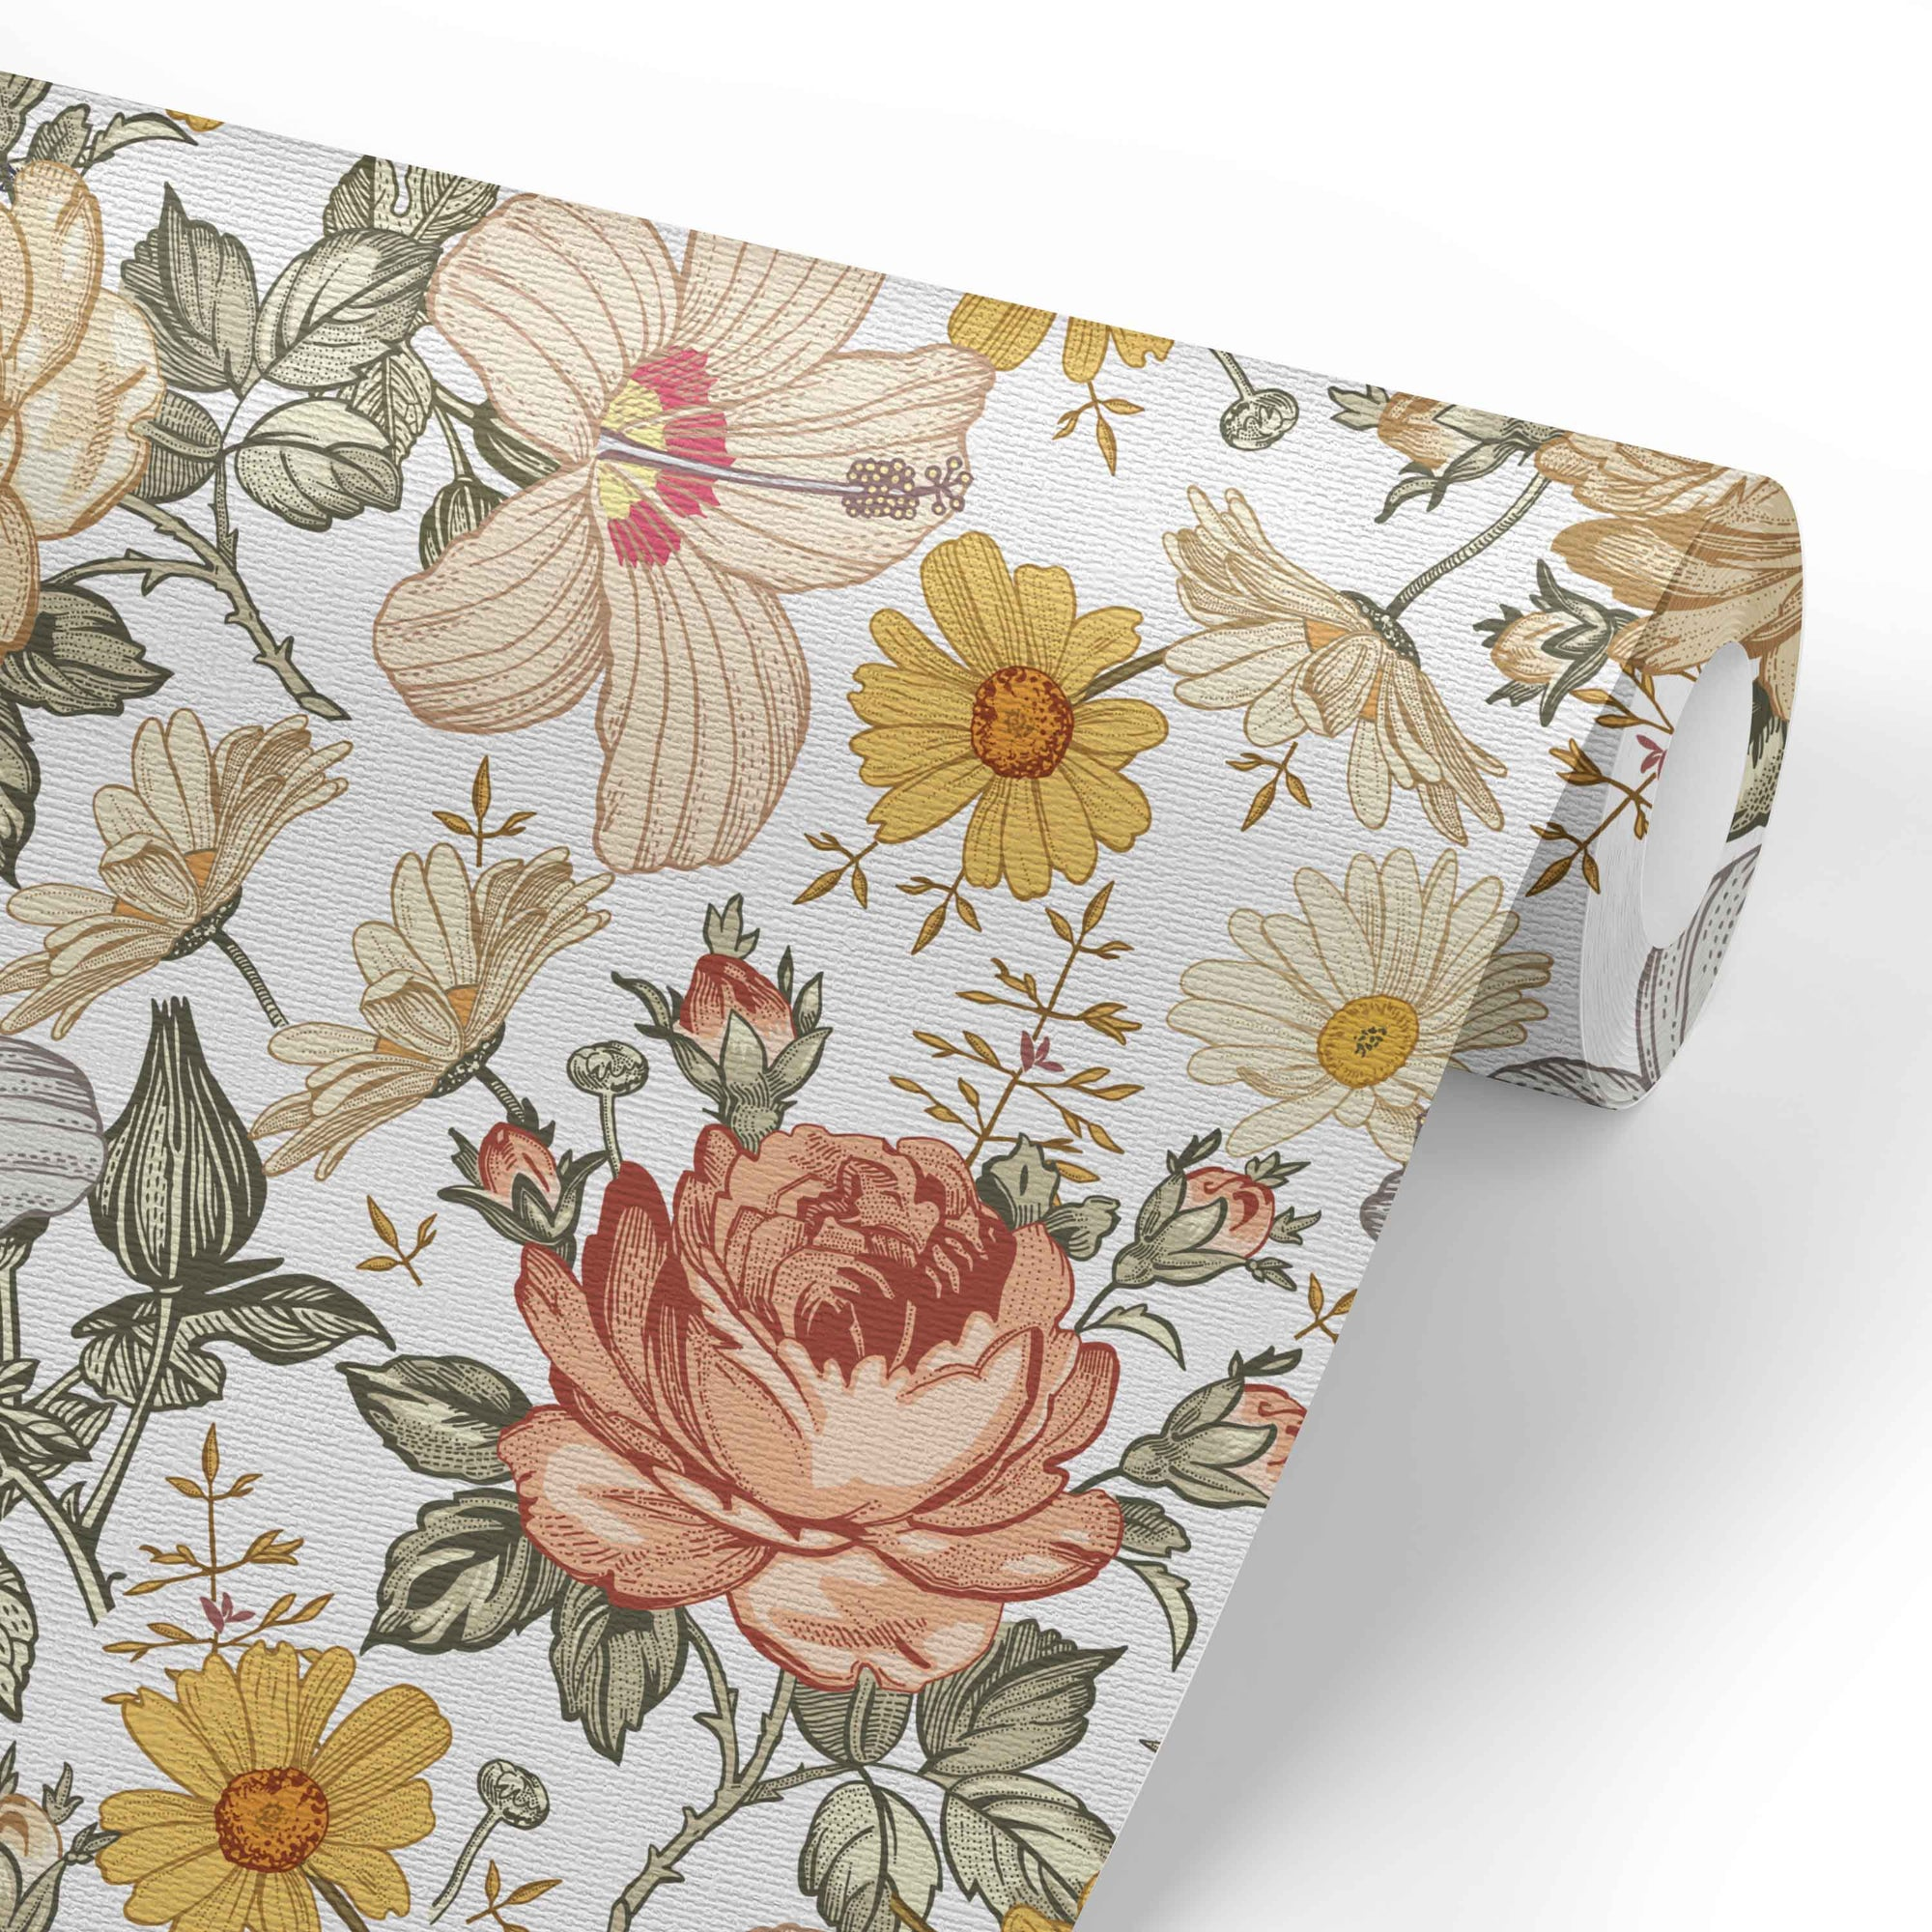 Peyton S Vintage Floral Removable Wallpaper Caden Lane